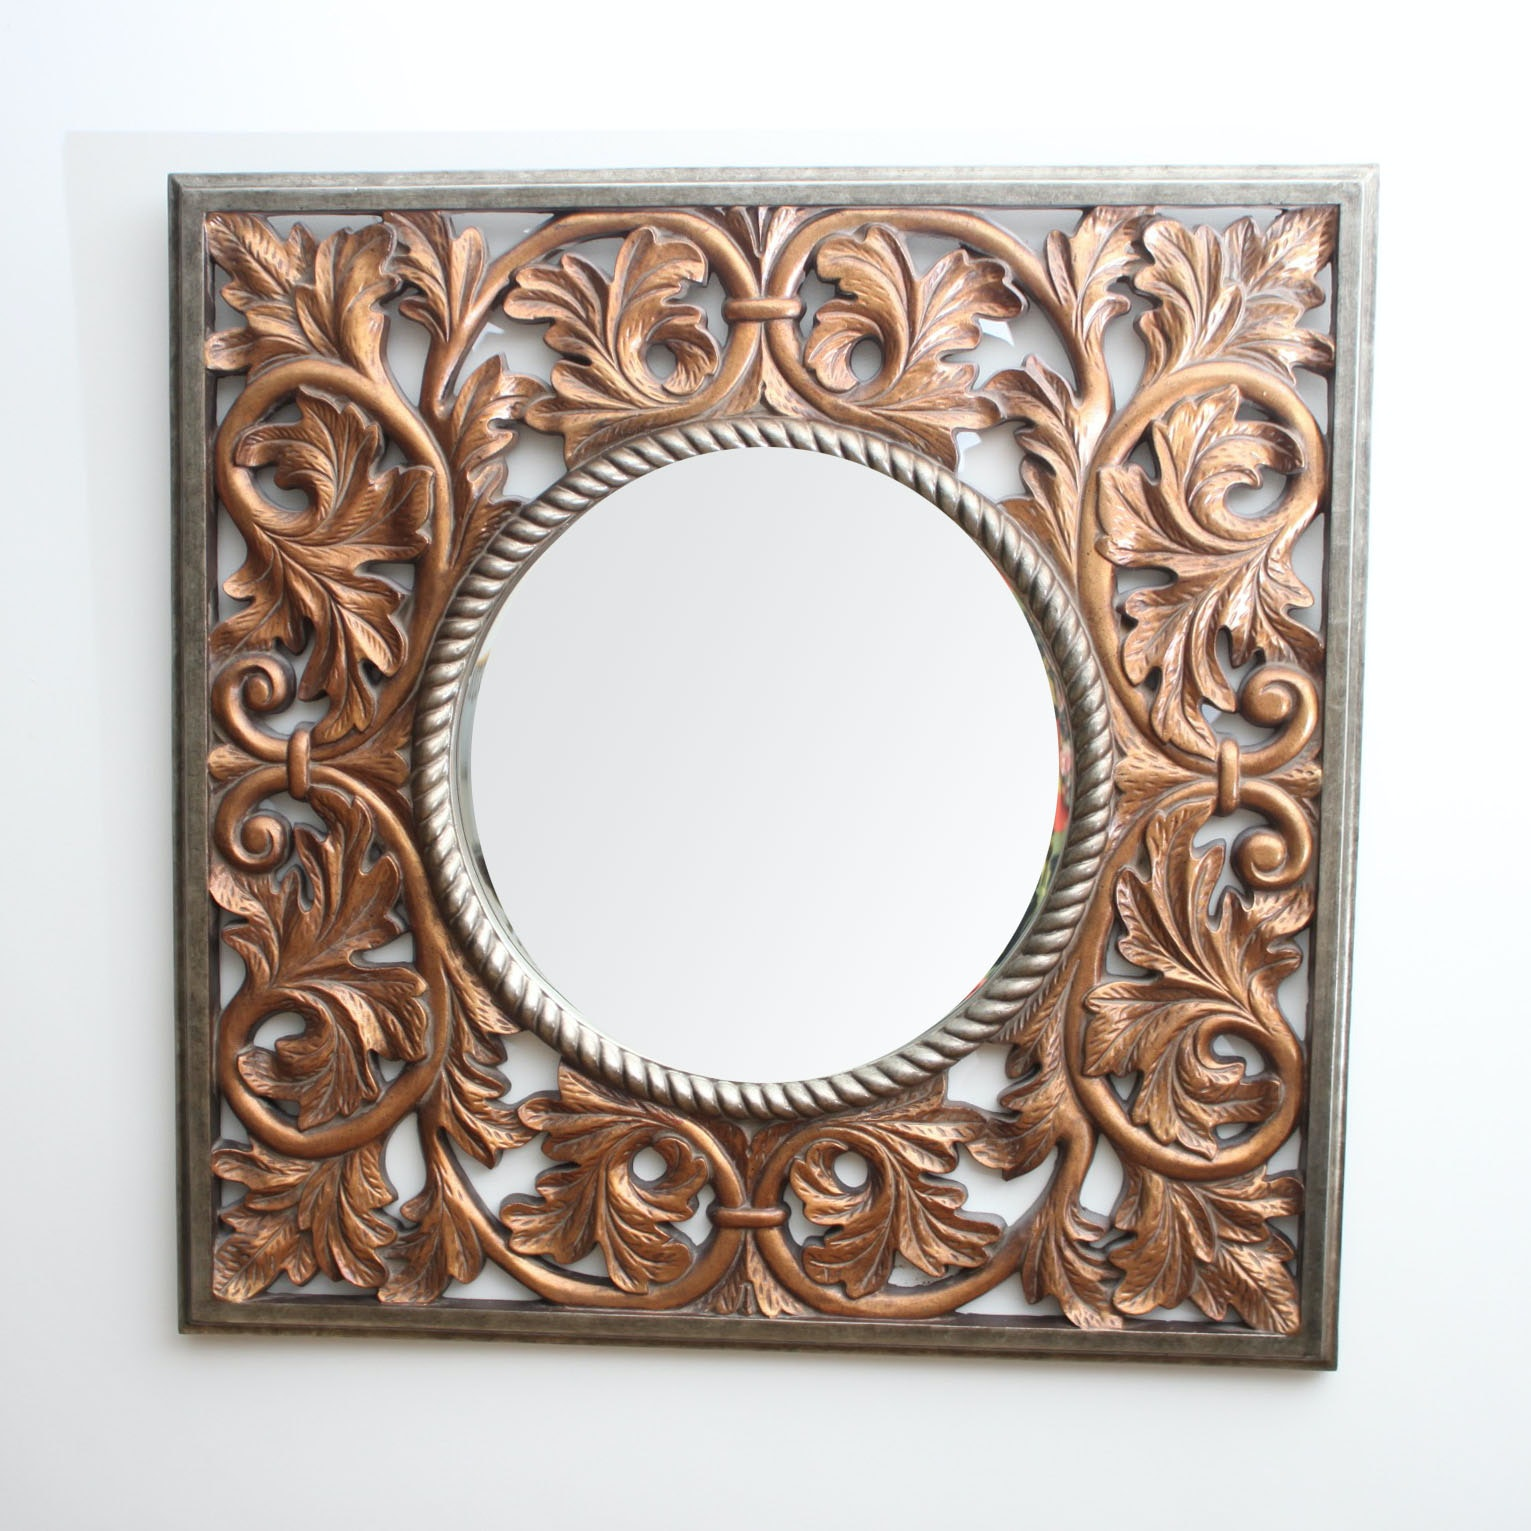 Gold Tone Wall Mirror with Scrolled Leaf Motif